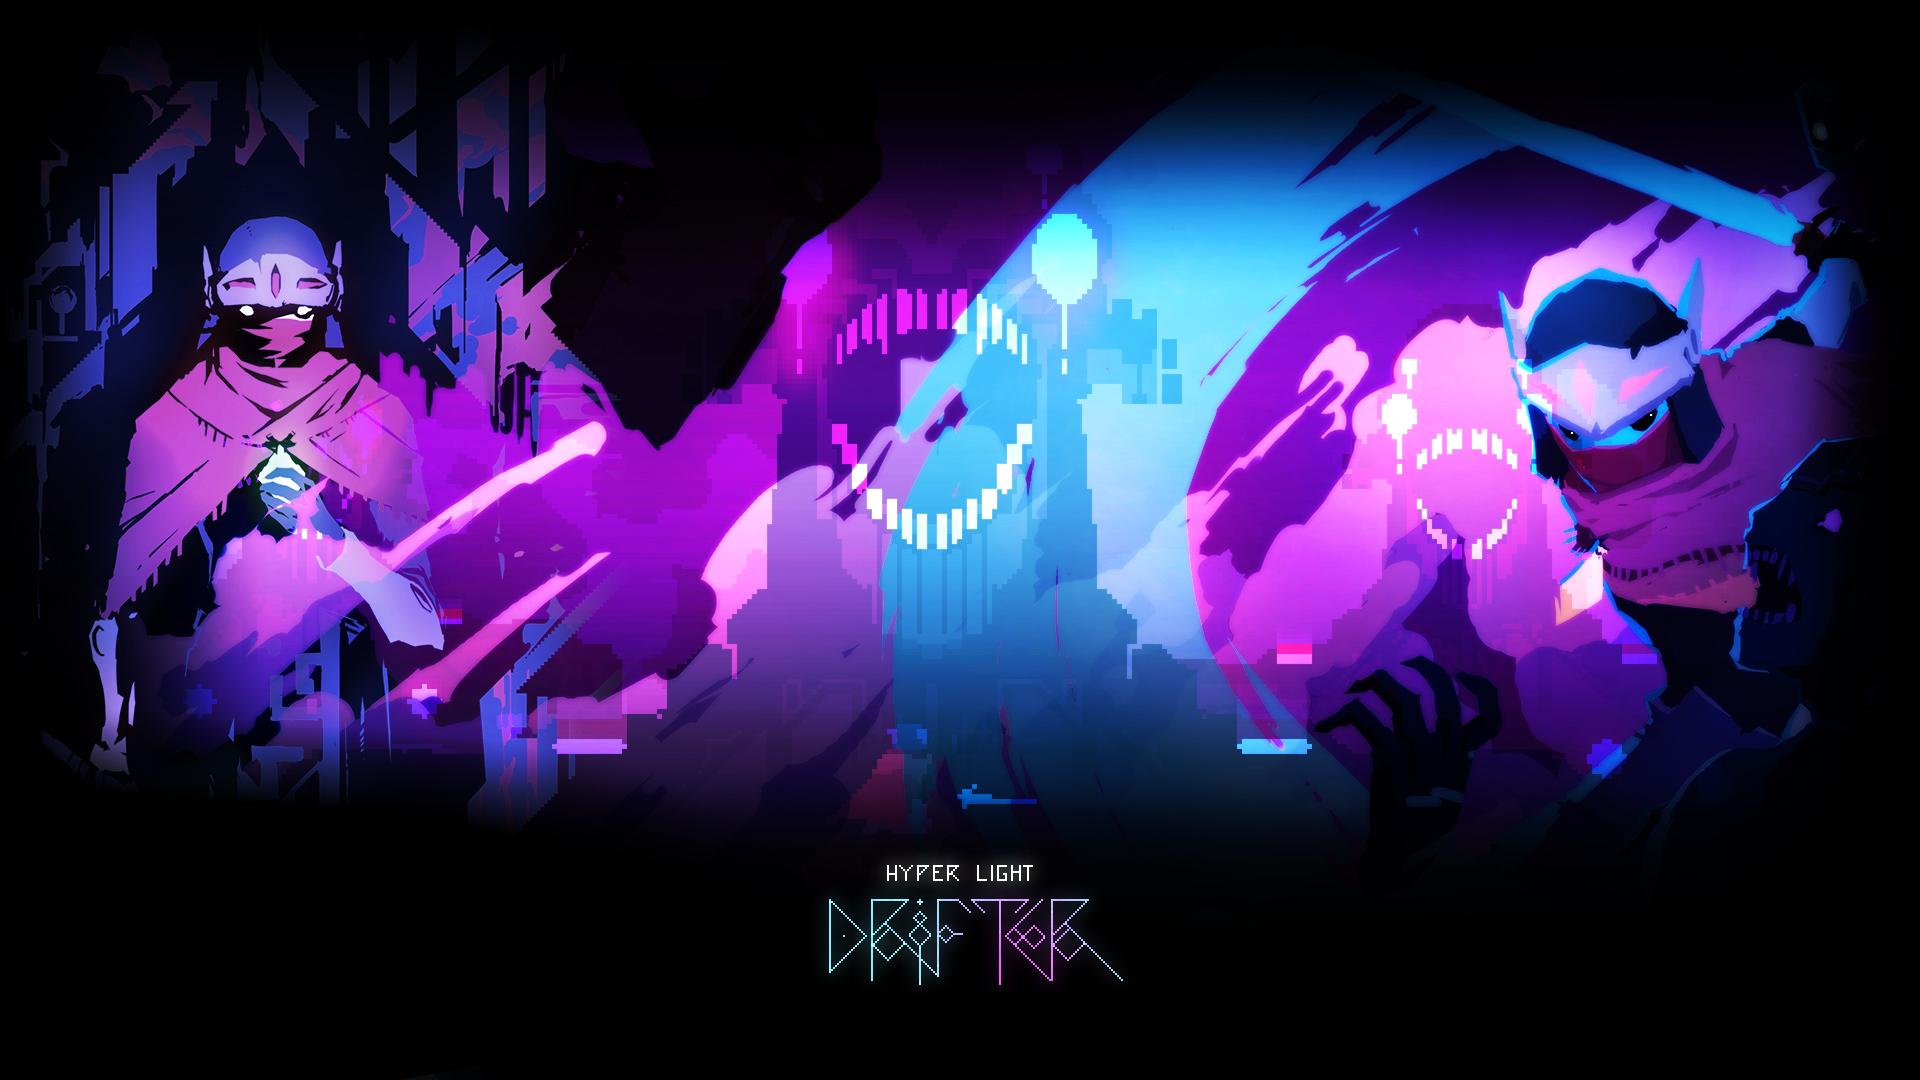 Hyper Light Drifter Wallpaper Imgur Hyper Light Drifter Wallpaper Drifter Indie Games